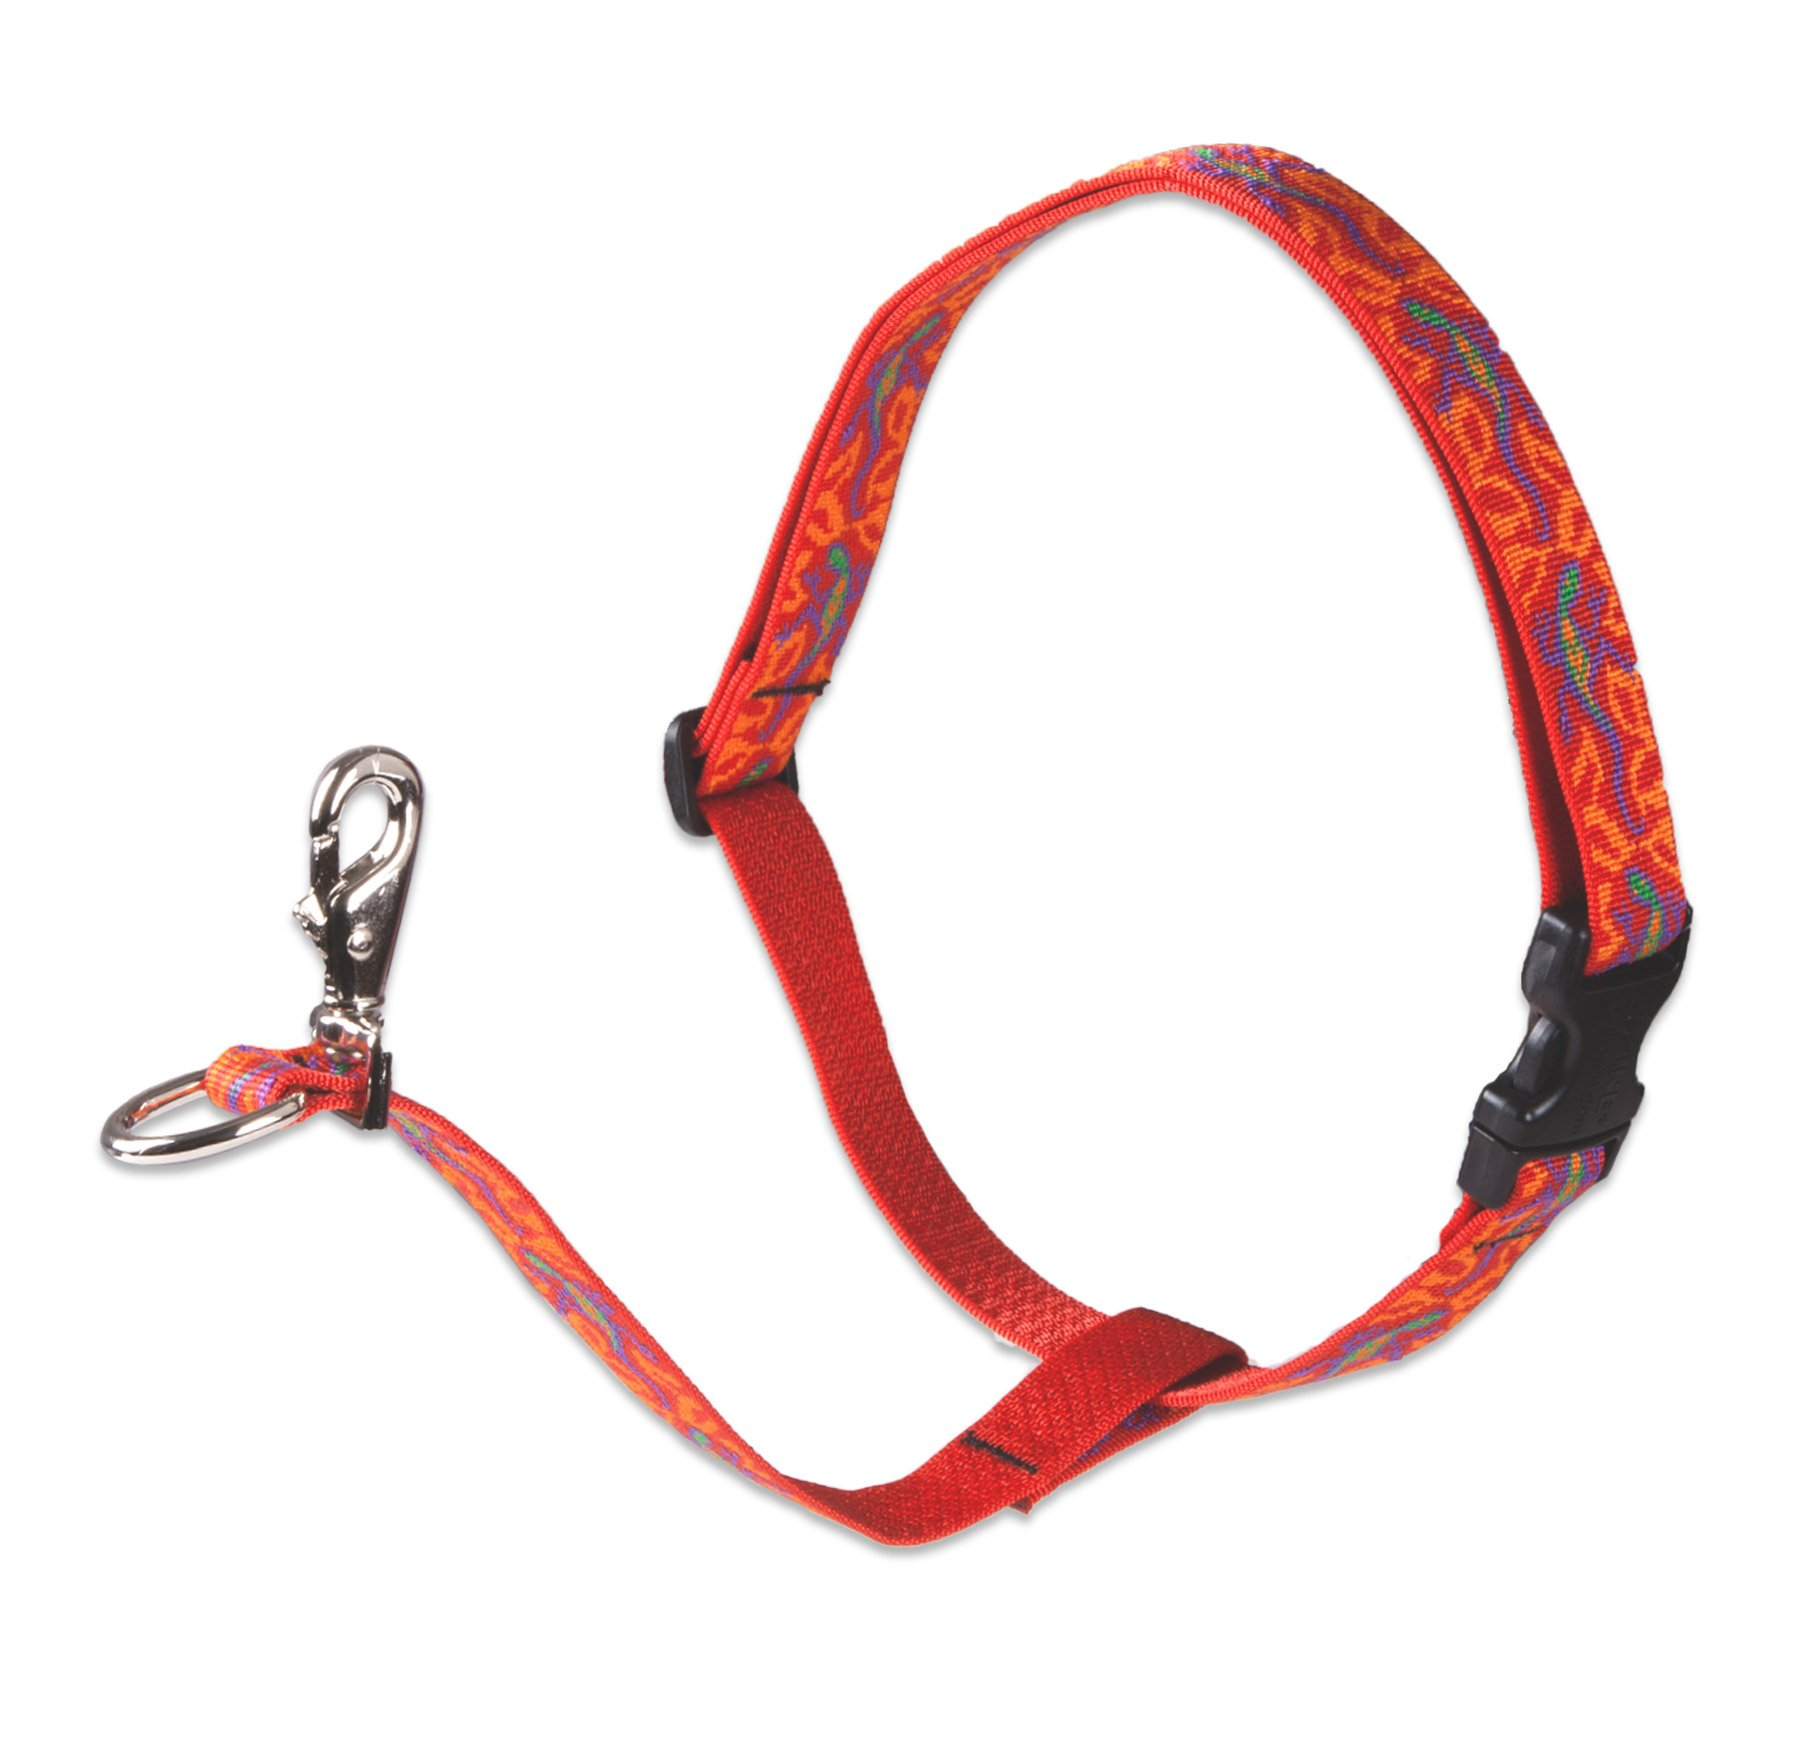 LupinePet Originals 1'' Go Go Gecko 26-38'' No Pull Harness for Medium-Larger Dogs